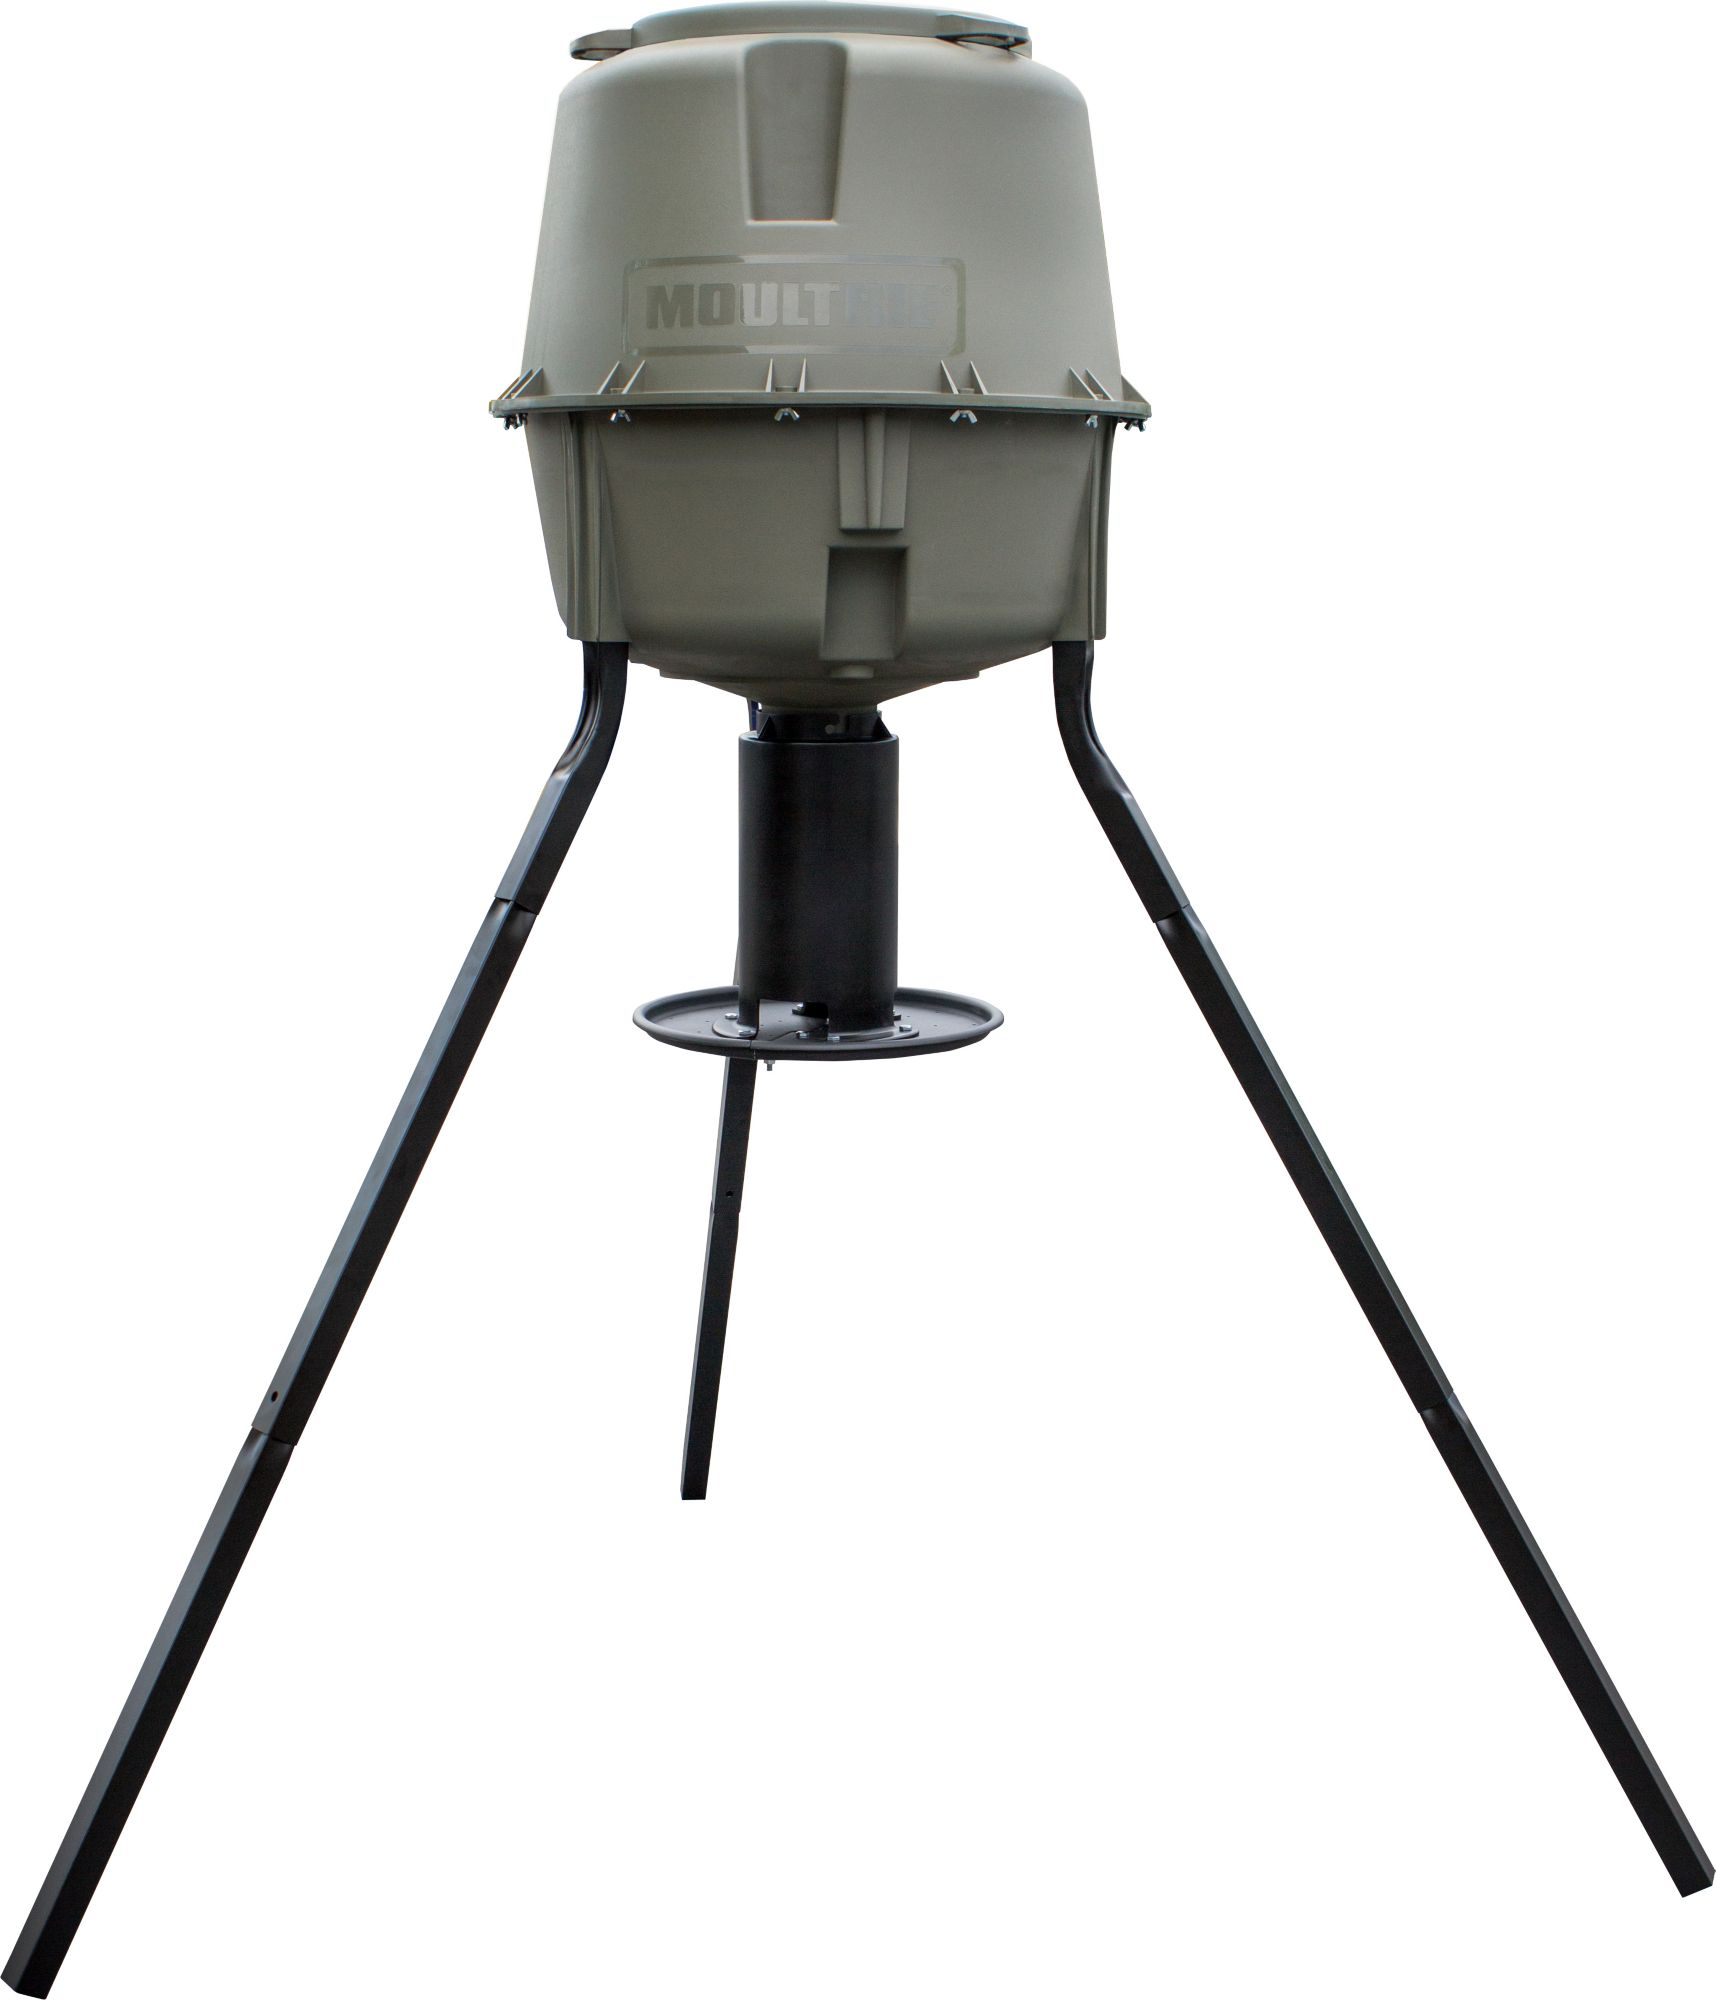 feeders outdoors sports feeder moultrie dp demand hunting easy amazon deer feed com game gallon